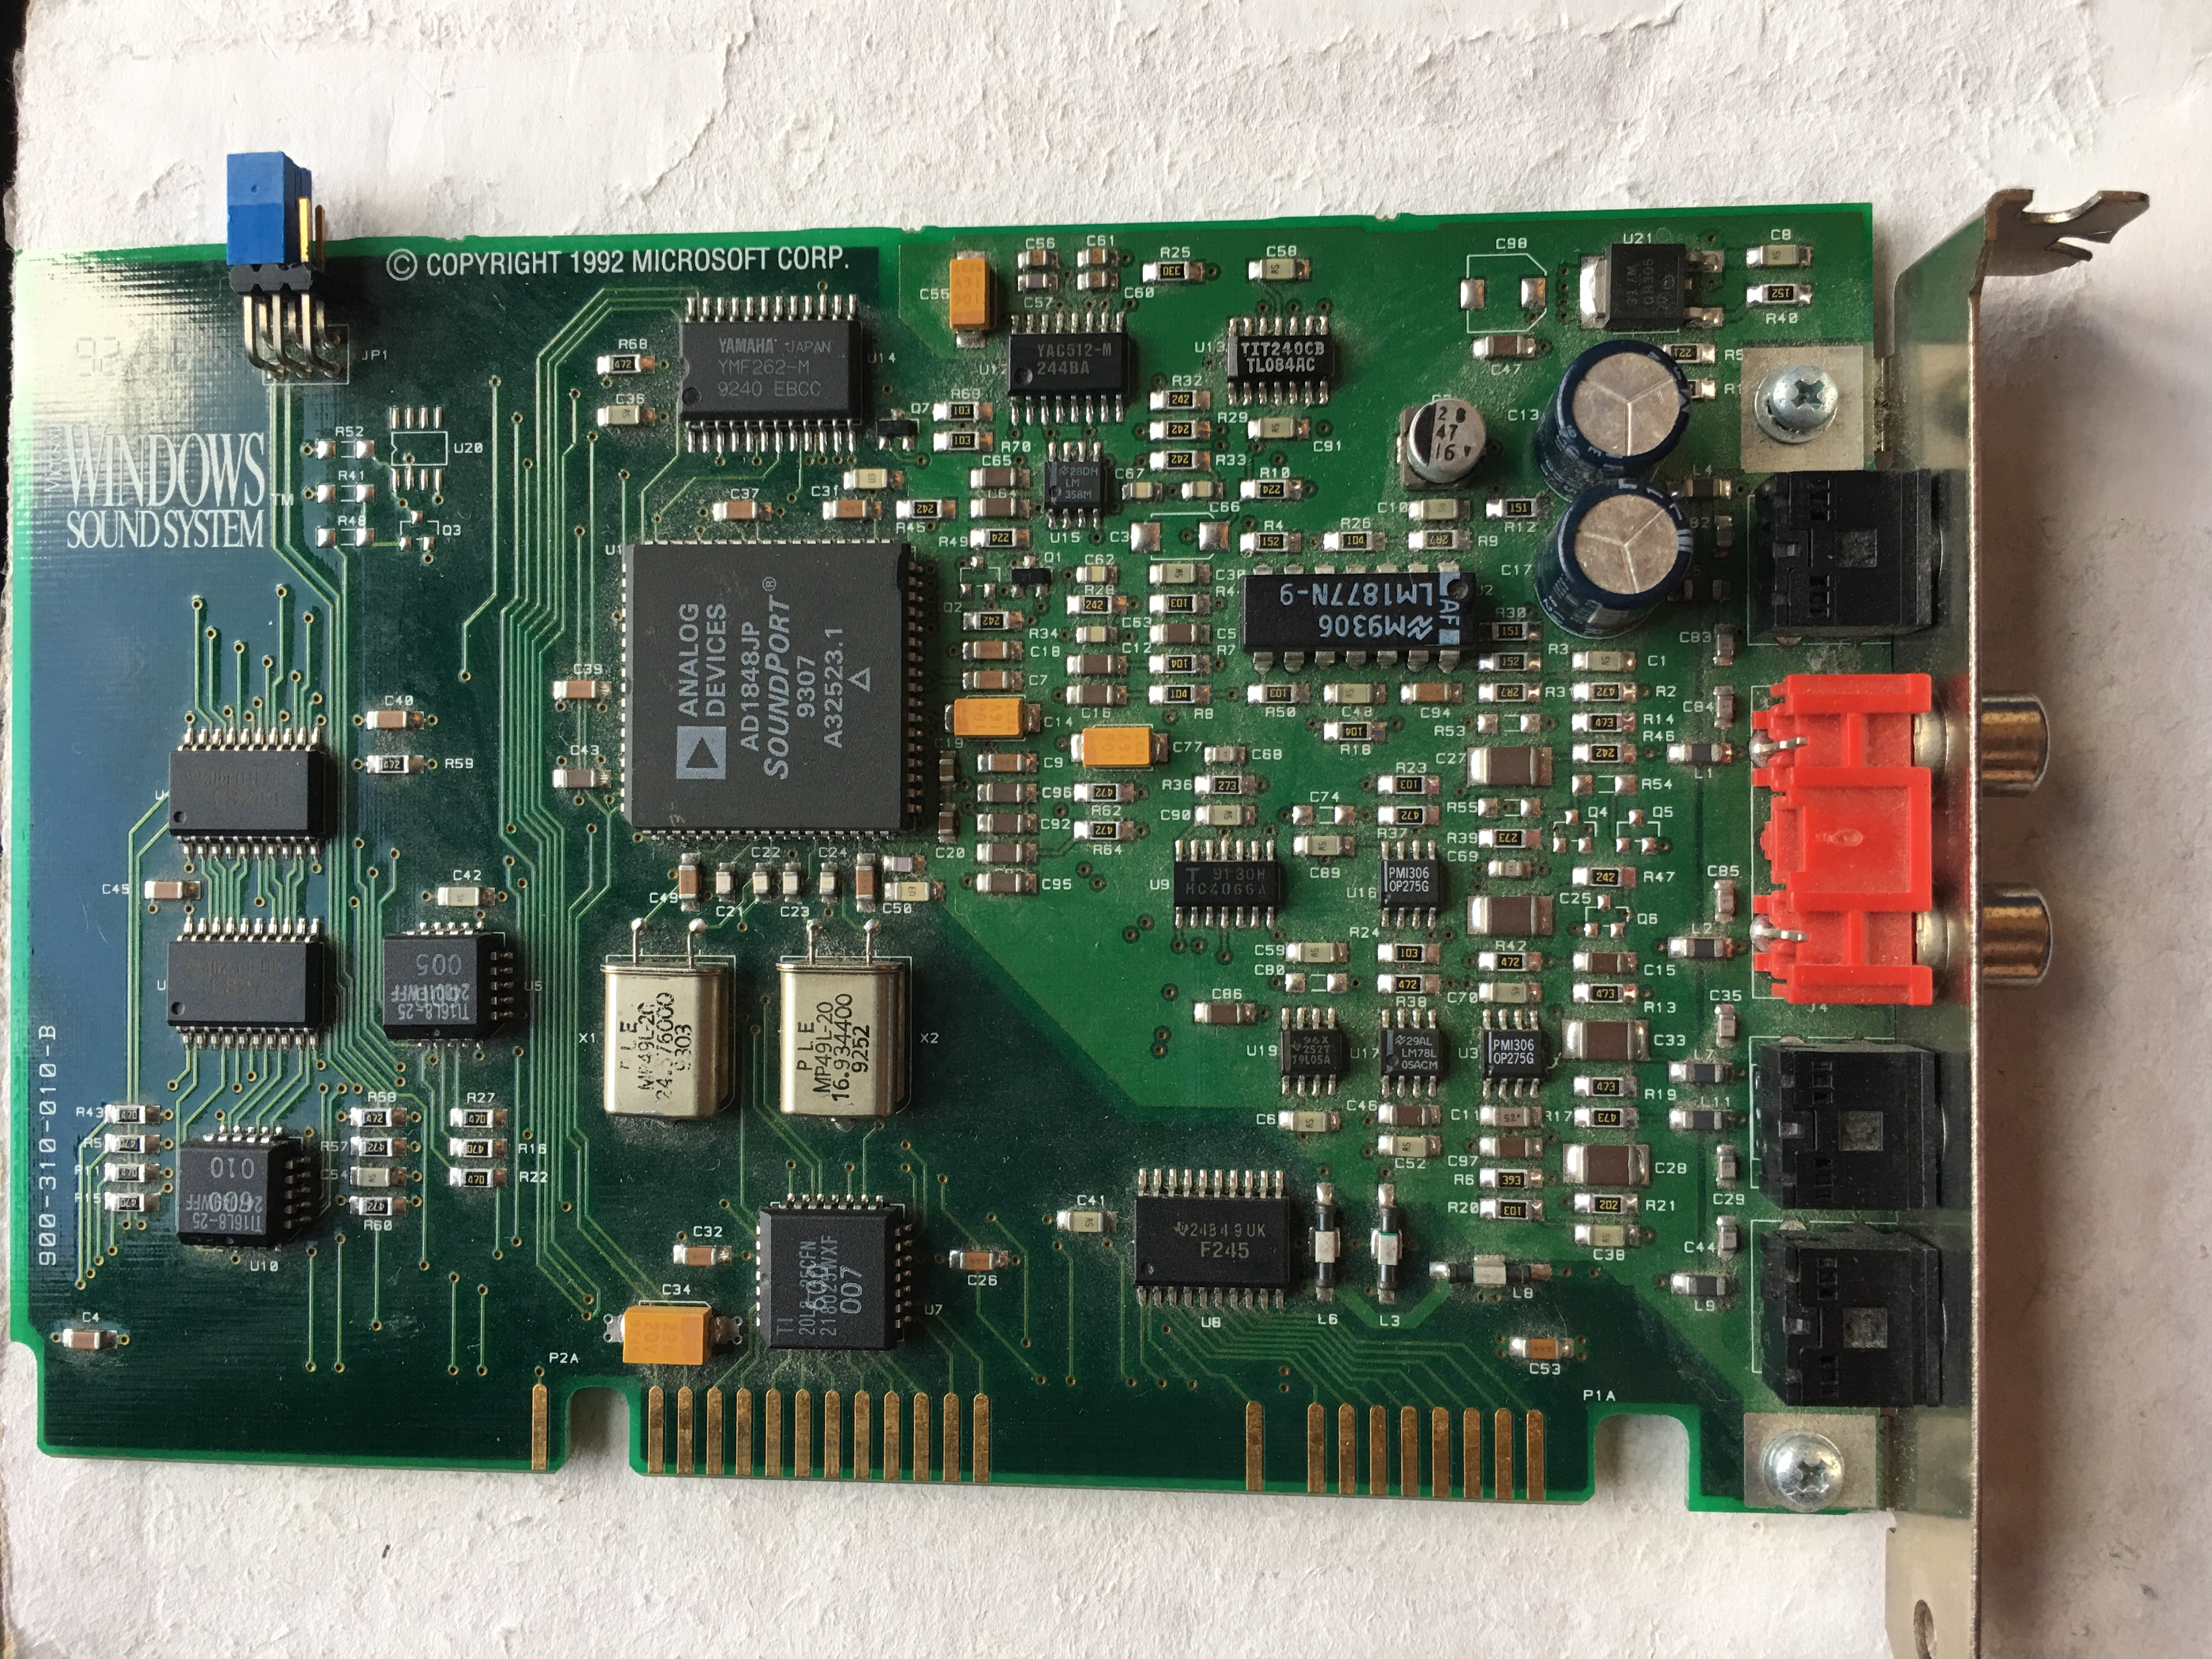 Microsoft-Windows-Sound-System-ISA-card_900-310-010-B.JPG